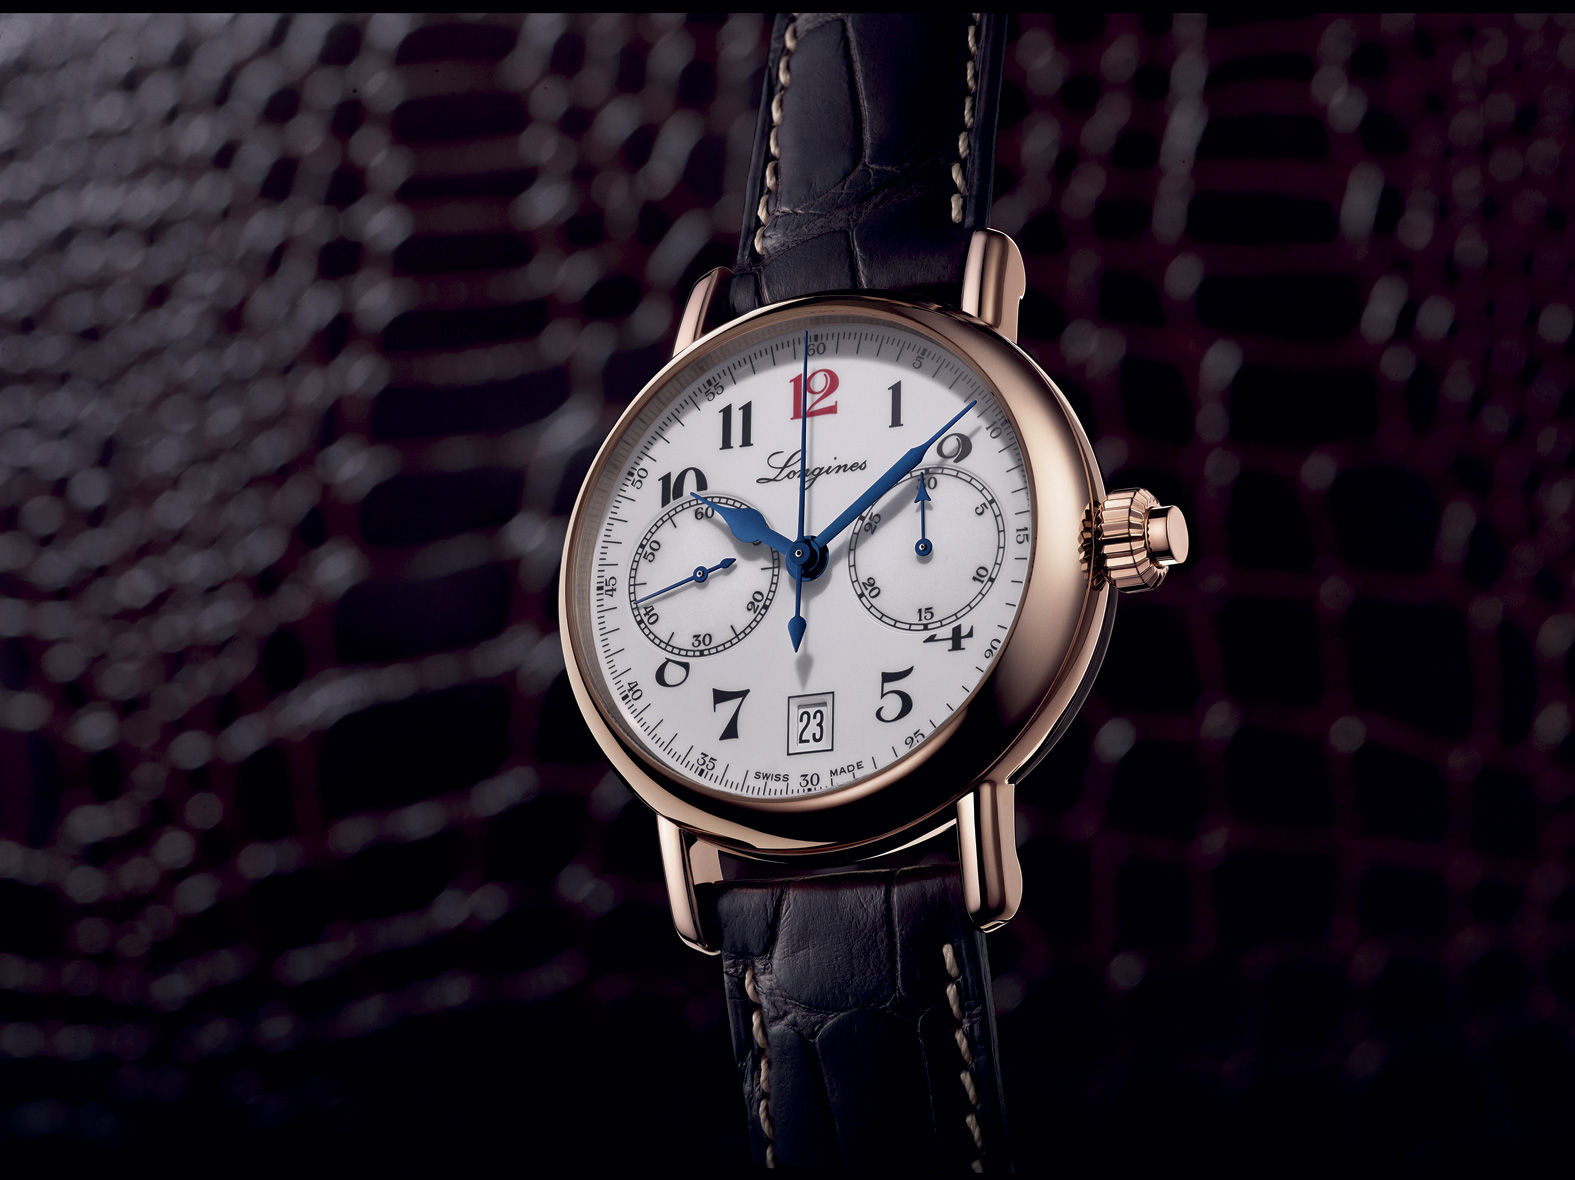 The-Longines-Column-Wheel-Single-Push-Piece-Chronograph-oro-rosa-frontal-ambiente